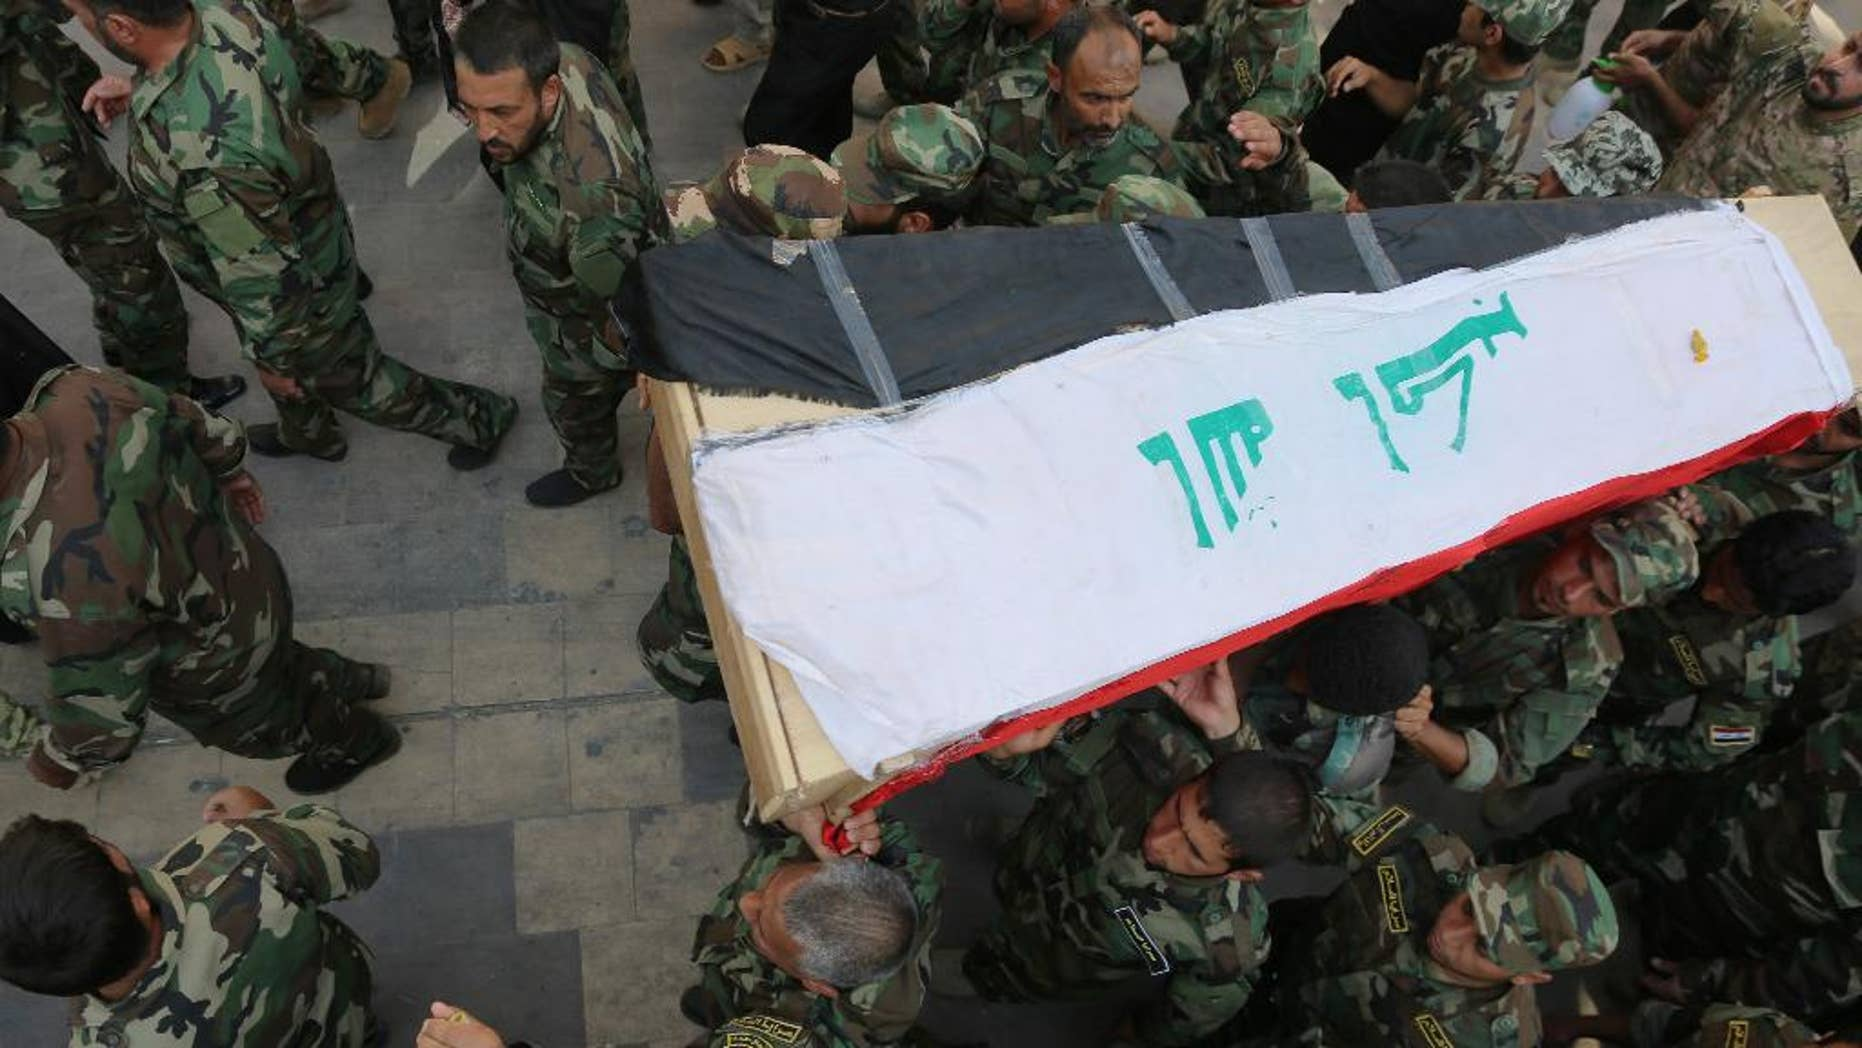 Shiite militiamen carry the flag-draped coffin of their colleague who was killed during clashes with Islamic militants in the town of Amirli, Iraq, on Wednesday, during his funeral procession in the Shiite holy city of Najaf, 100 miles (160 kilometers) south of Baghdad, Iraq, Thursday, Sept. 4, 2014. The Islamic State group has carved out a self-styled caliphate in the large area straddling the Iraqi-Syrian border that it now controls. In early August, the United States launched air strikes on the militant group in Iraq, in an effort to help Iraqi forces fight back against the growing militant threat. (AP Photo/Jaber al-Helo)